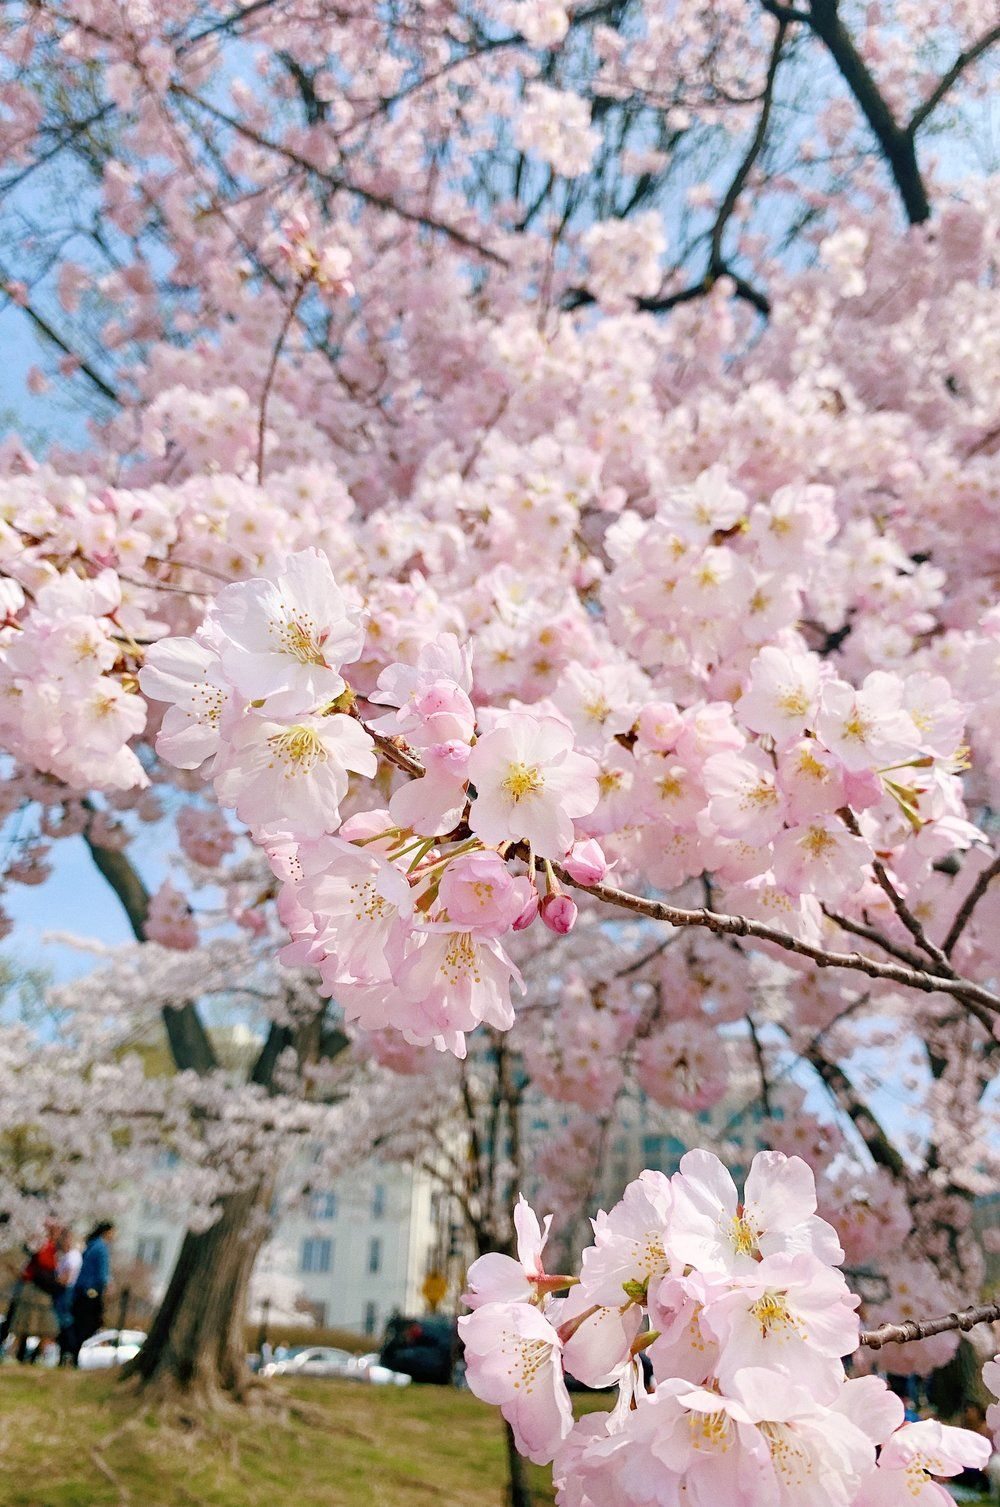 Happy Friday All That Glitters Cherry Blossom Season Spring Blooms Cherry Blossom Festival